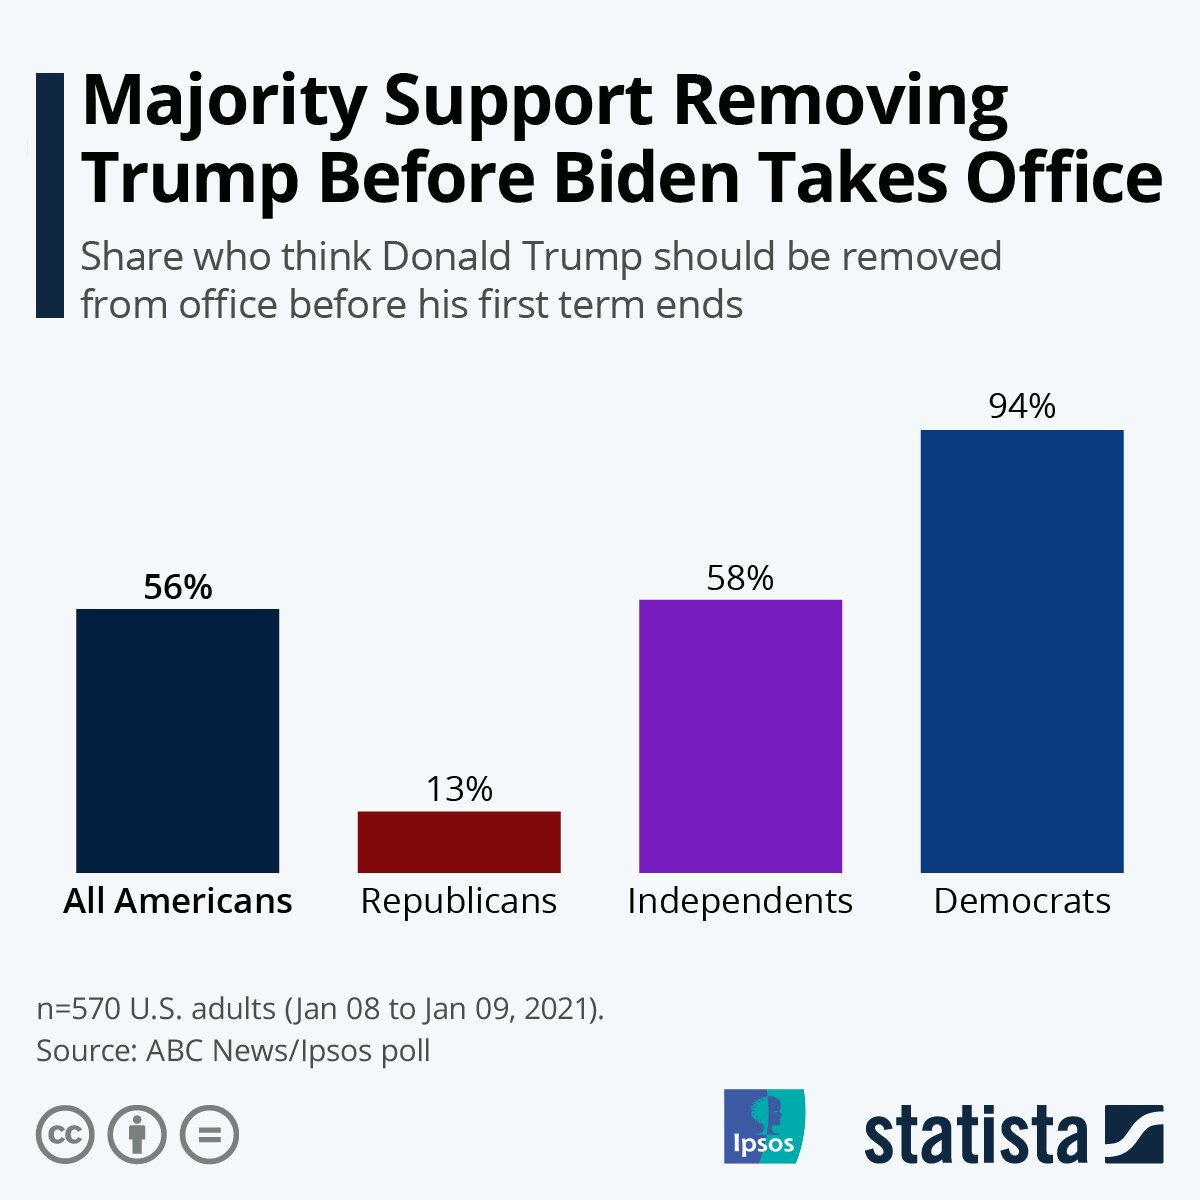 @HillaryClinton A new poll from @ABC and @Ipsos found that 56% of respondents think President Trump should be removed from office before the inauguration of @JoeBiden.